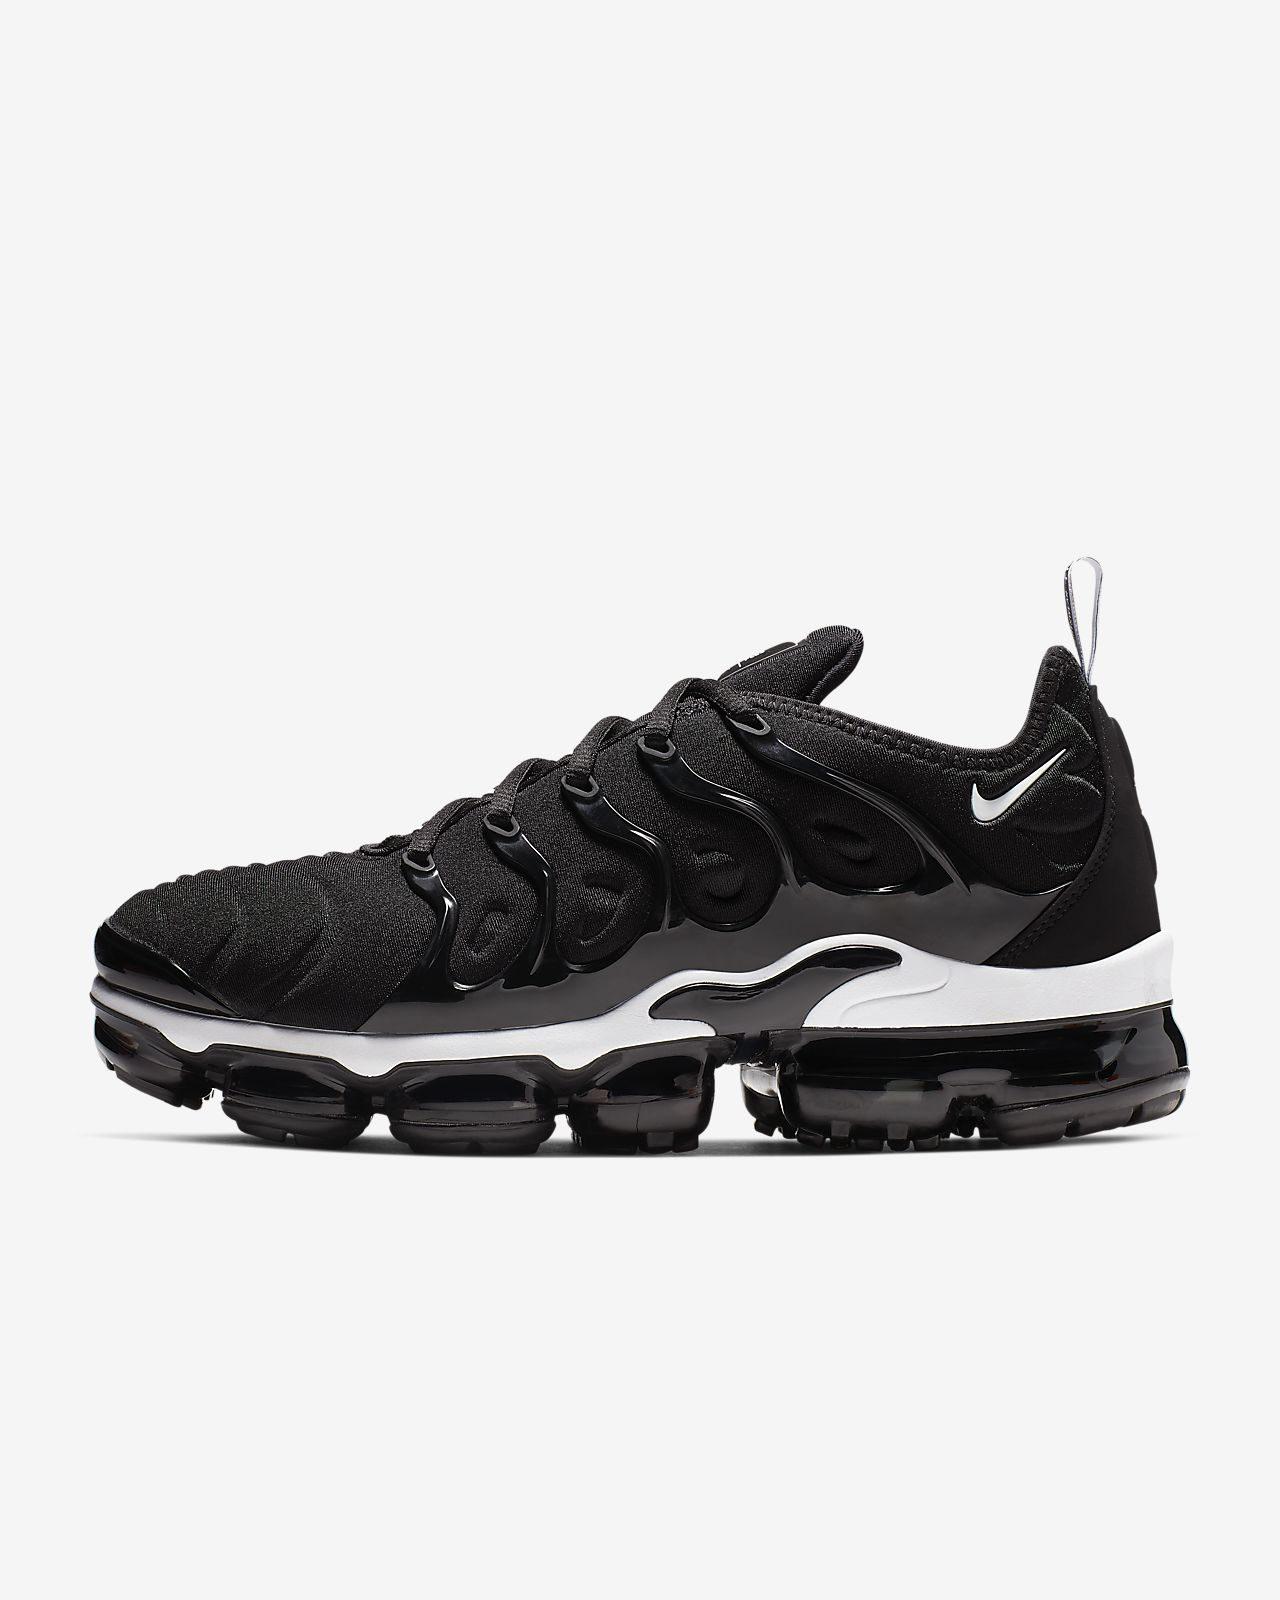 abc6cae048f8 Nike Air VaporMax Plus Men s Shoe. Nike.com GB